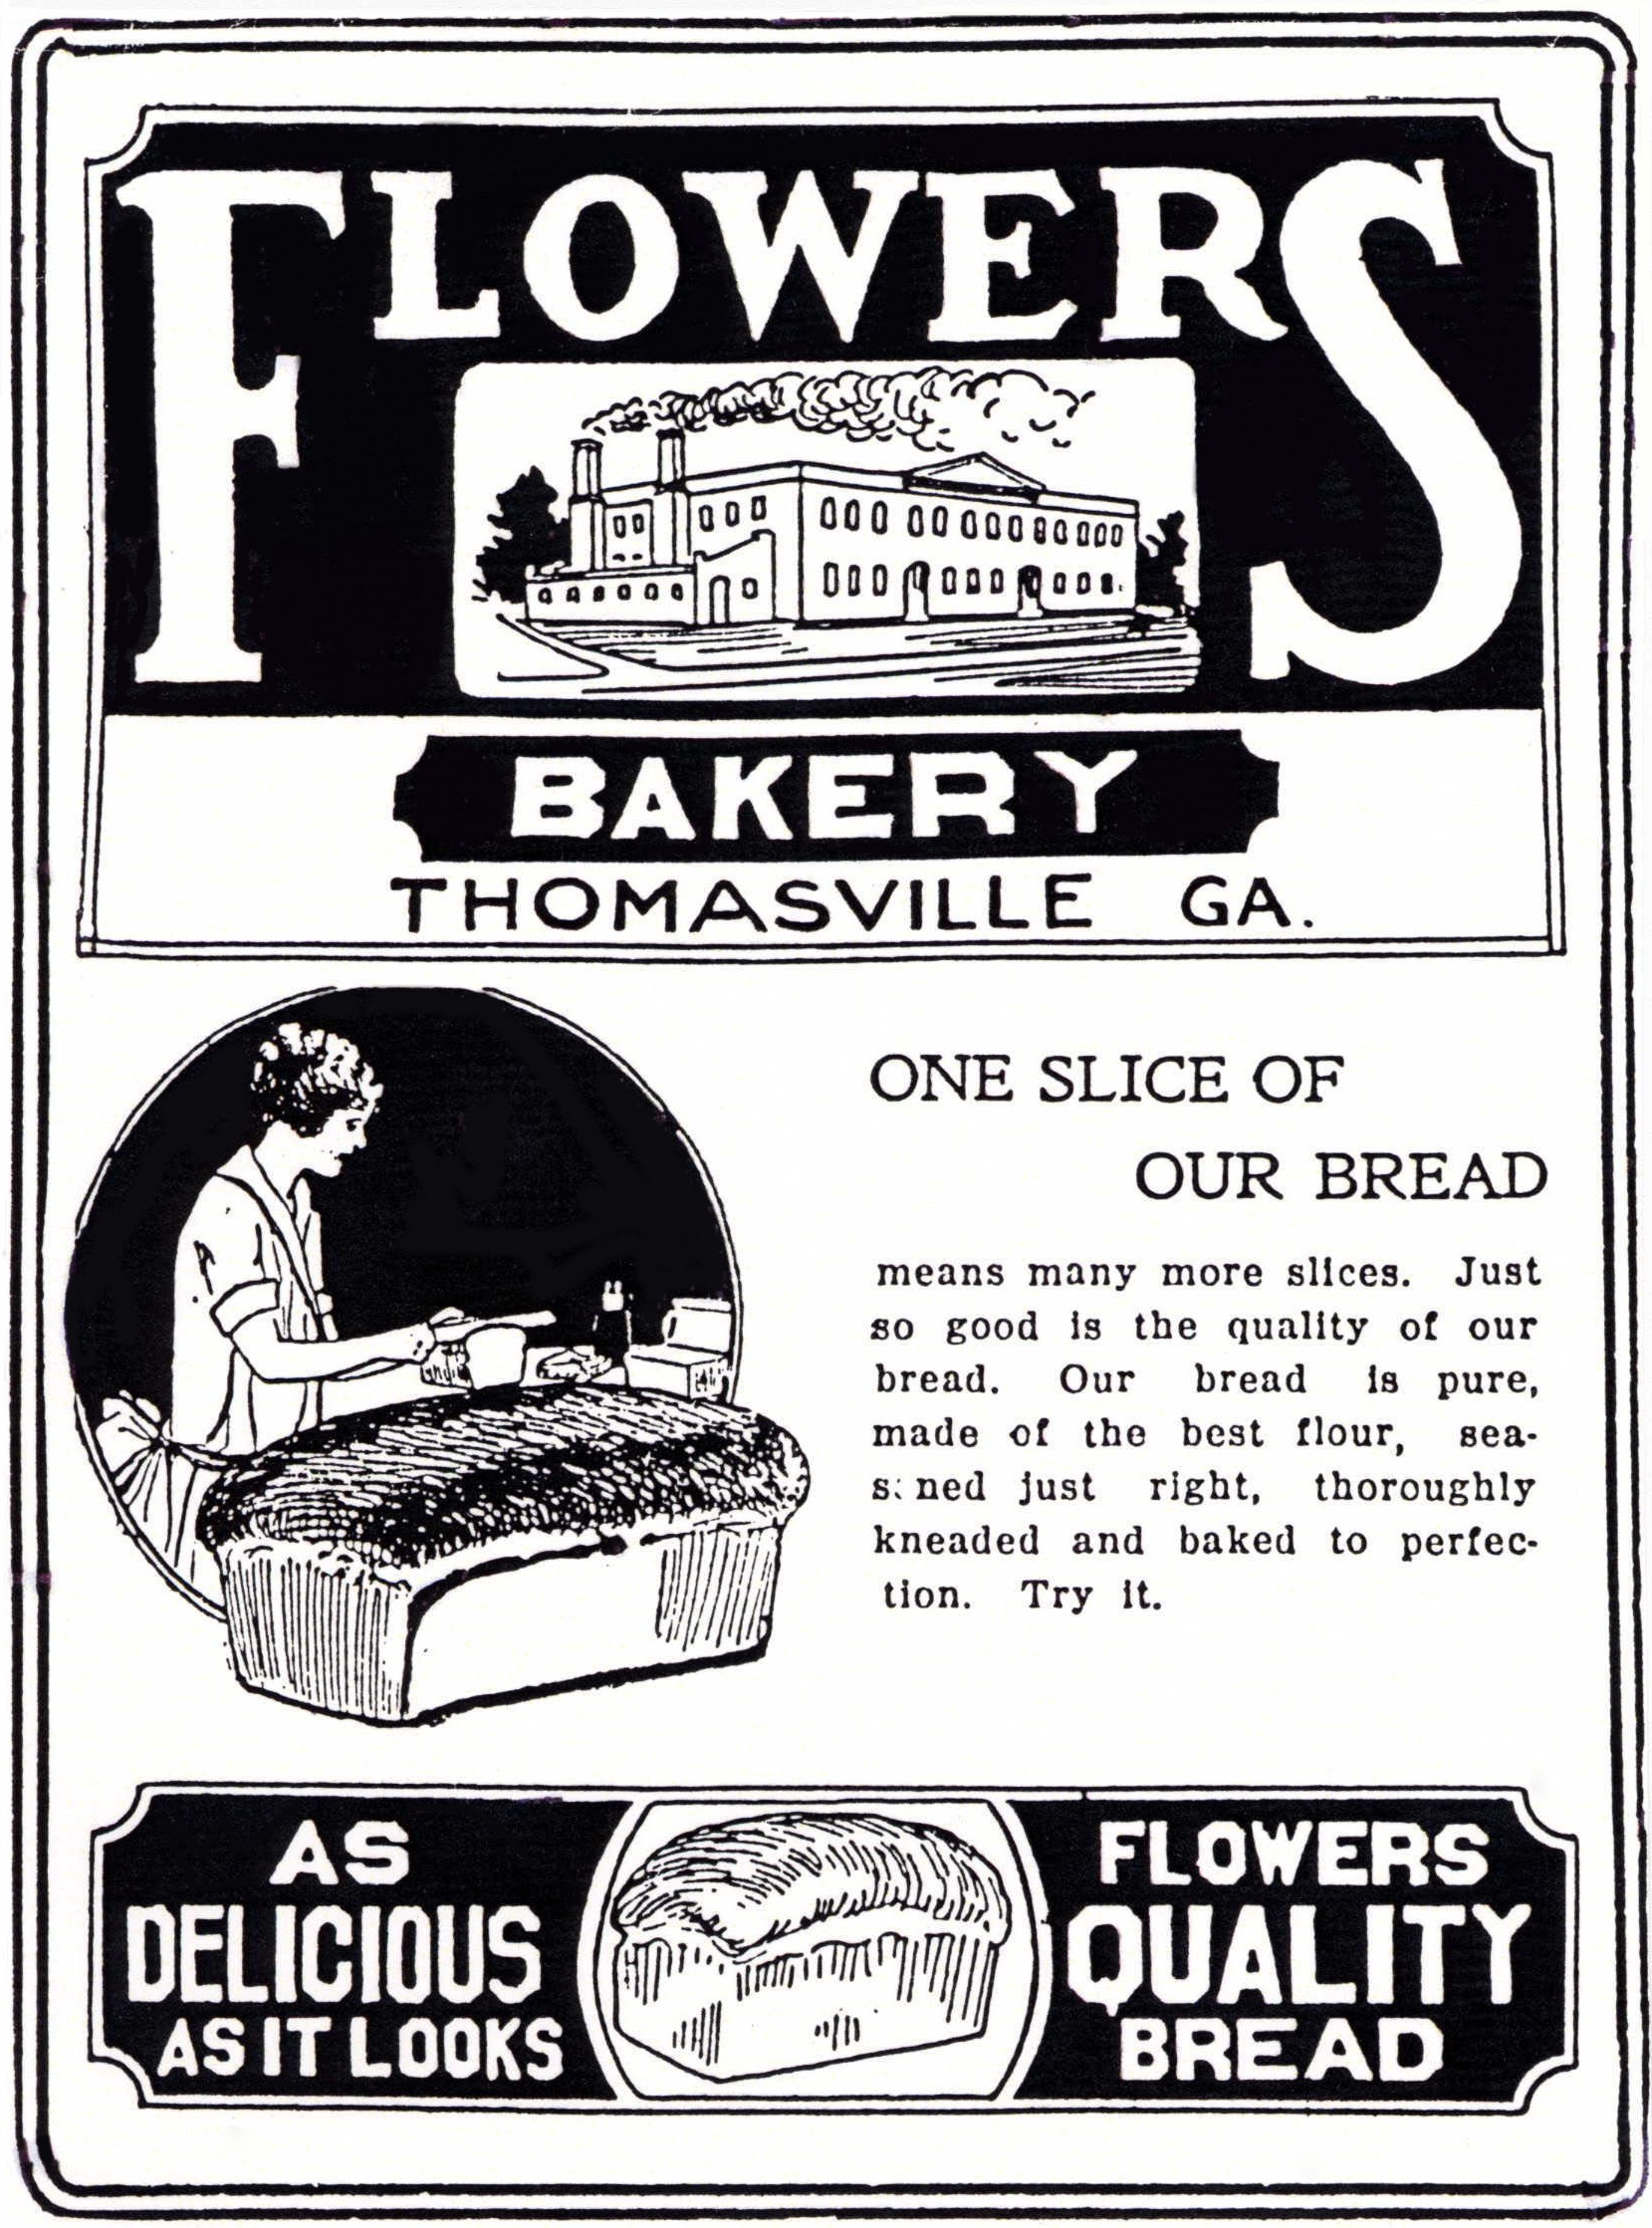 flowers-1927-thomasville-times-enterprise-ad-1